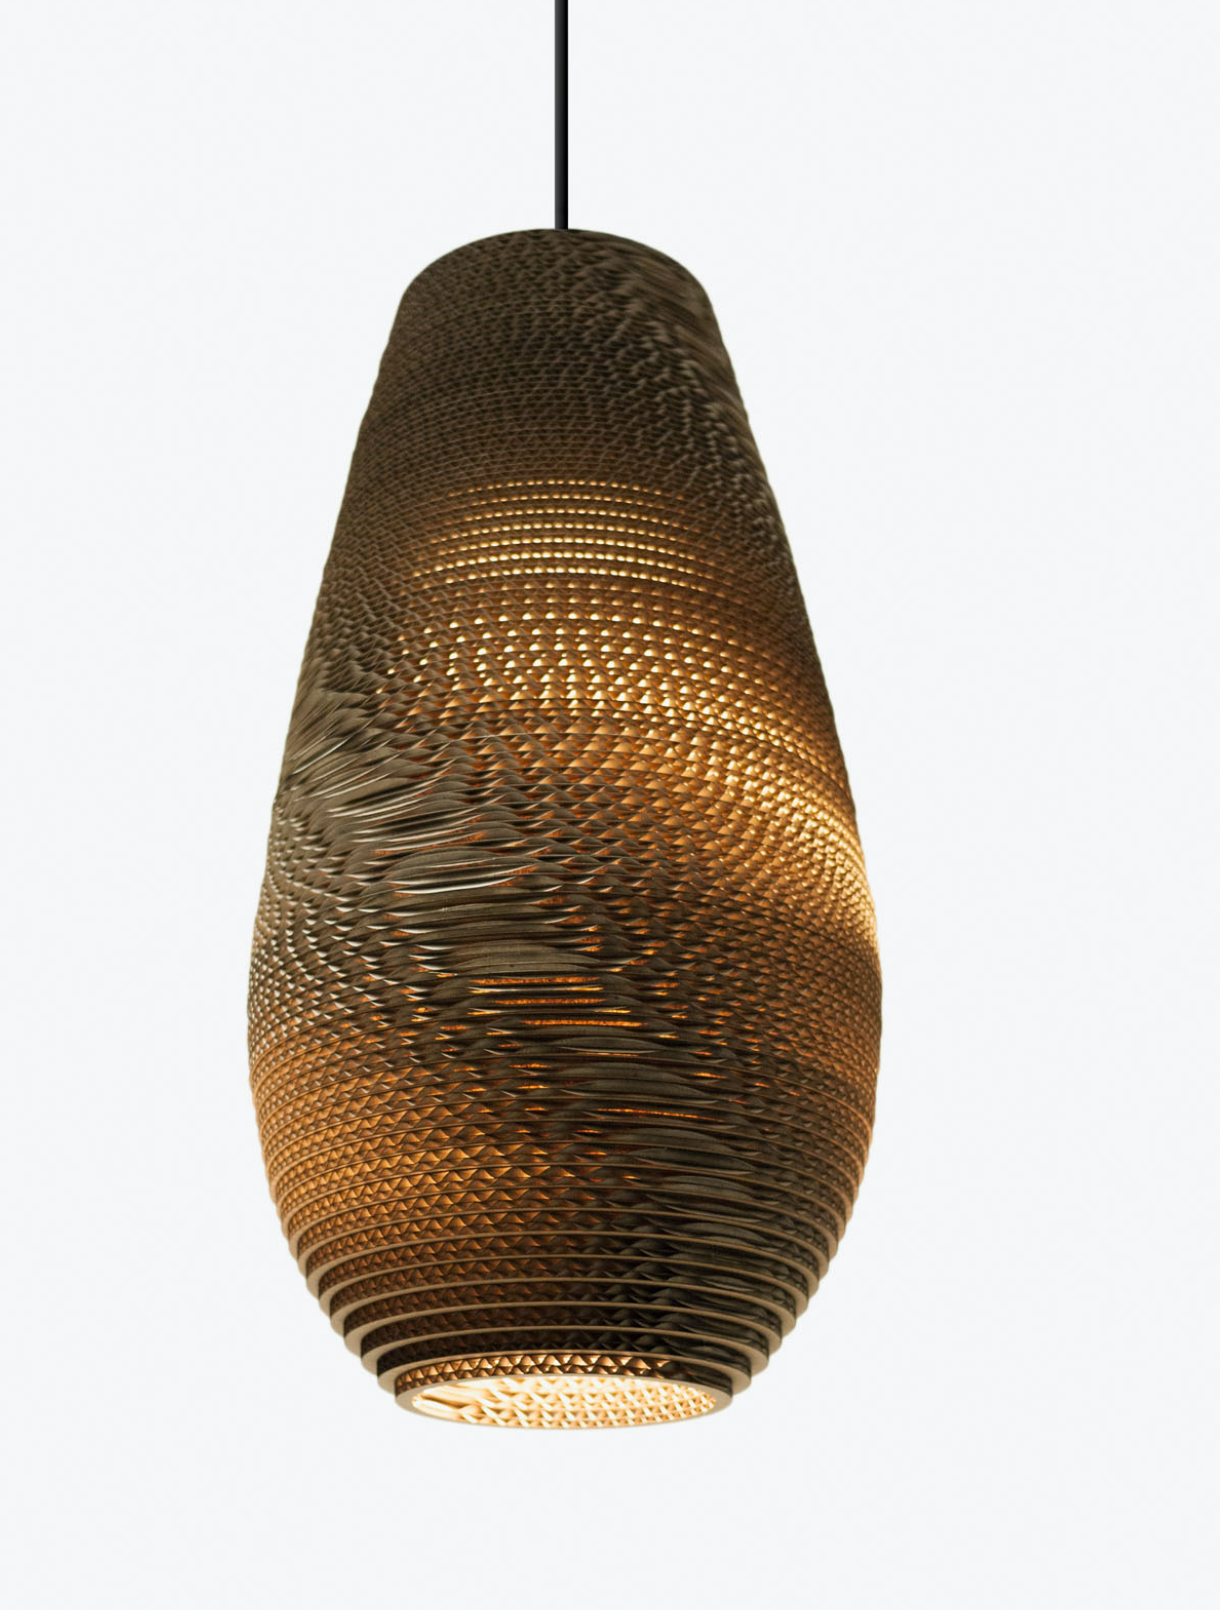 Pendant lamp Drop 18